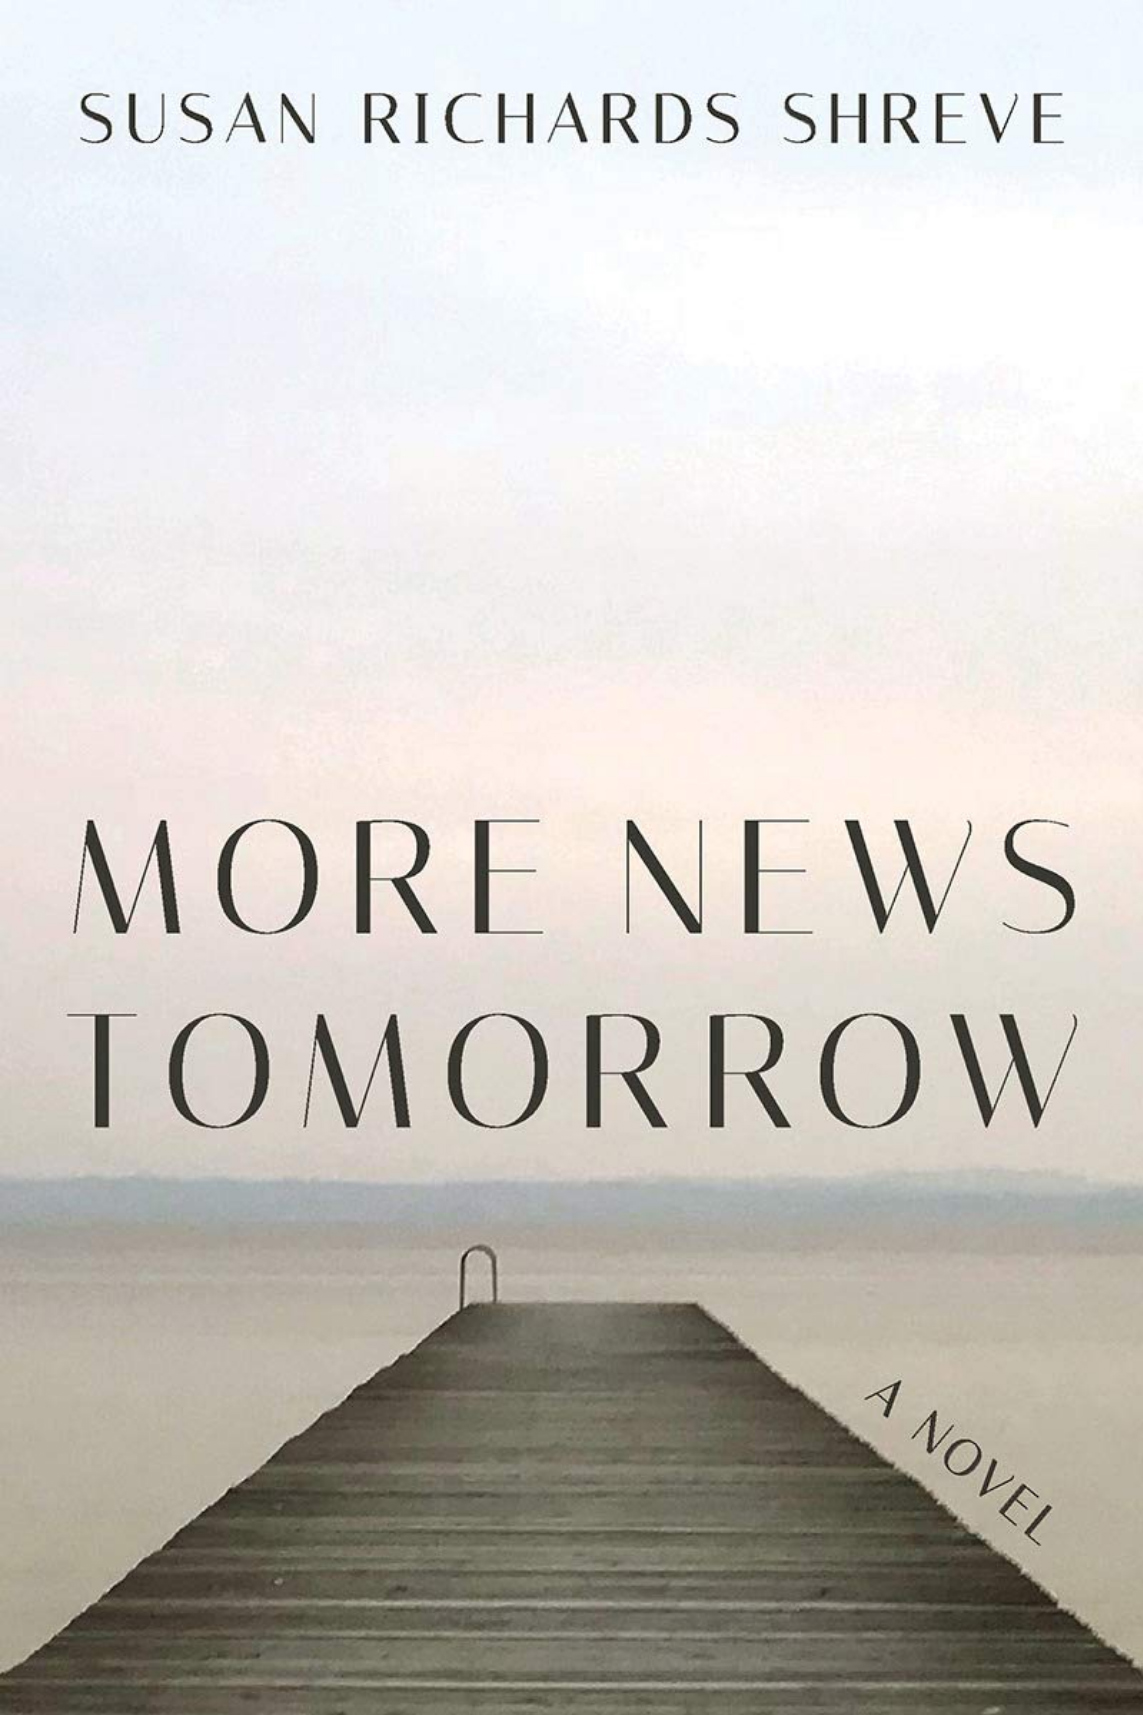 More_News_Tomorrow_Novel.jpg